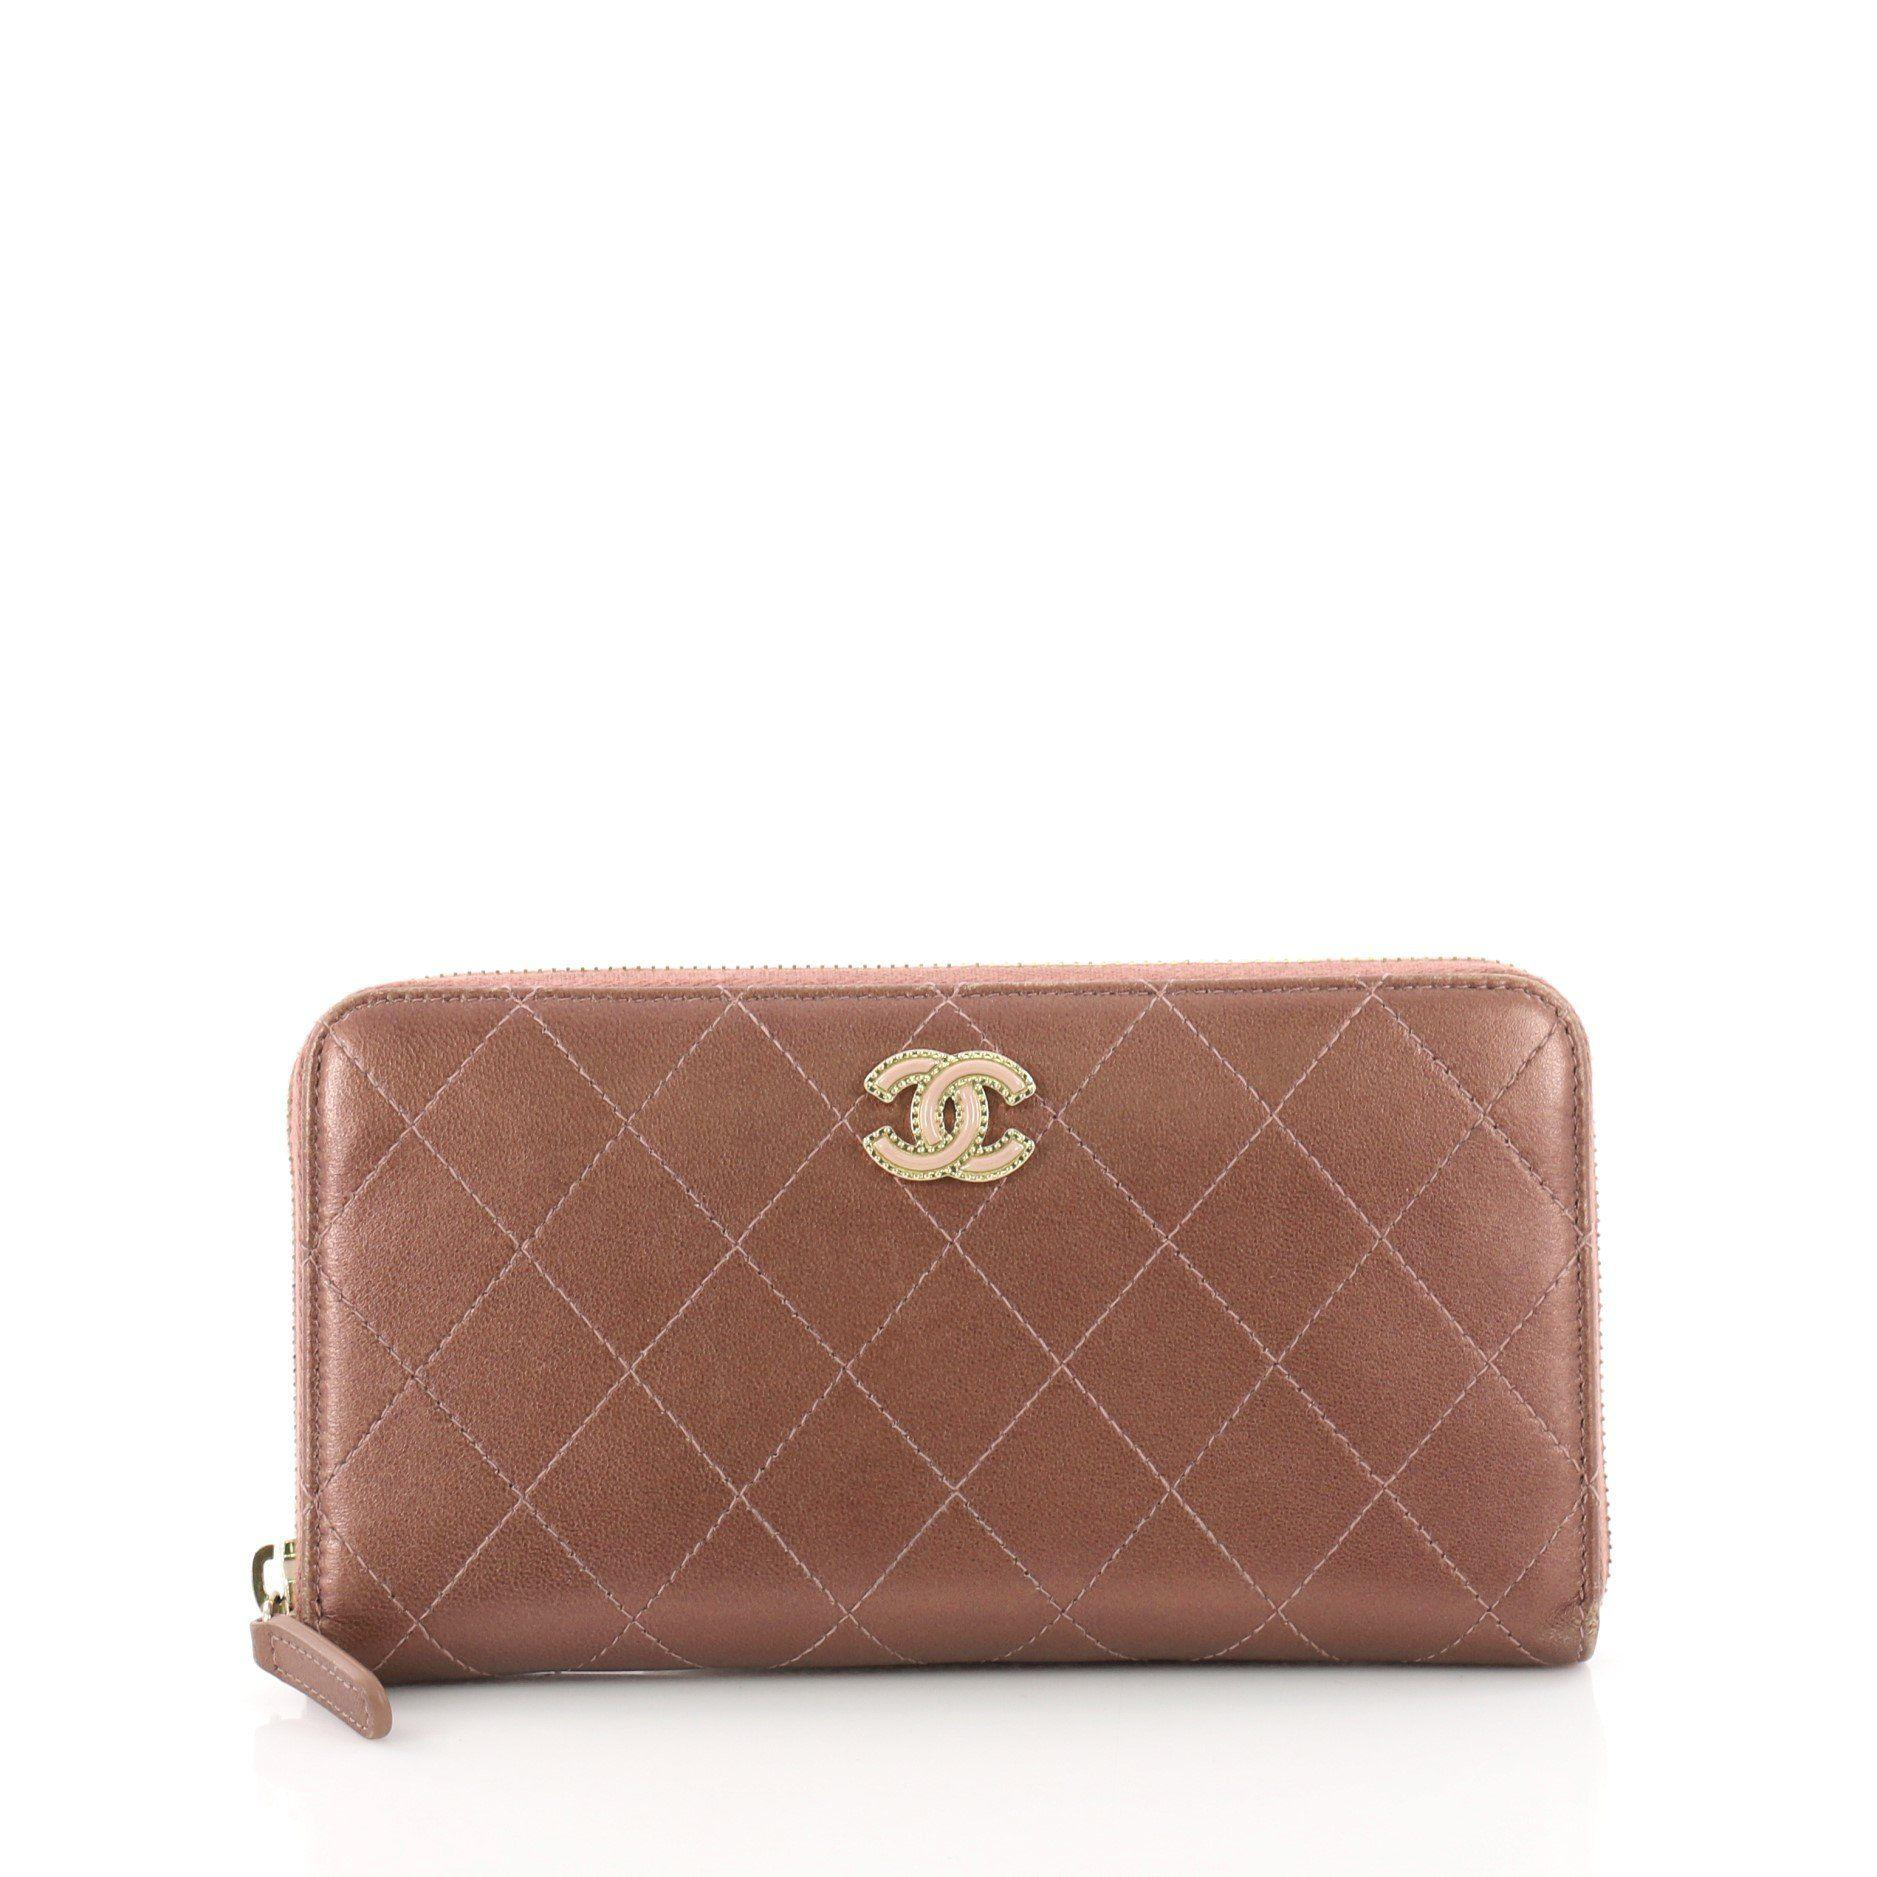 5d775a62844f Chanel. Women s Pre Owned Zip Around Wallet Quilted Lambskin Long